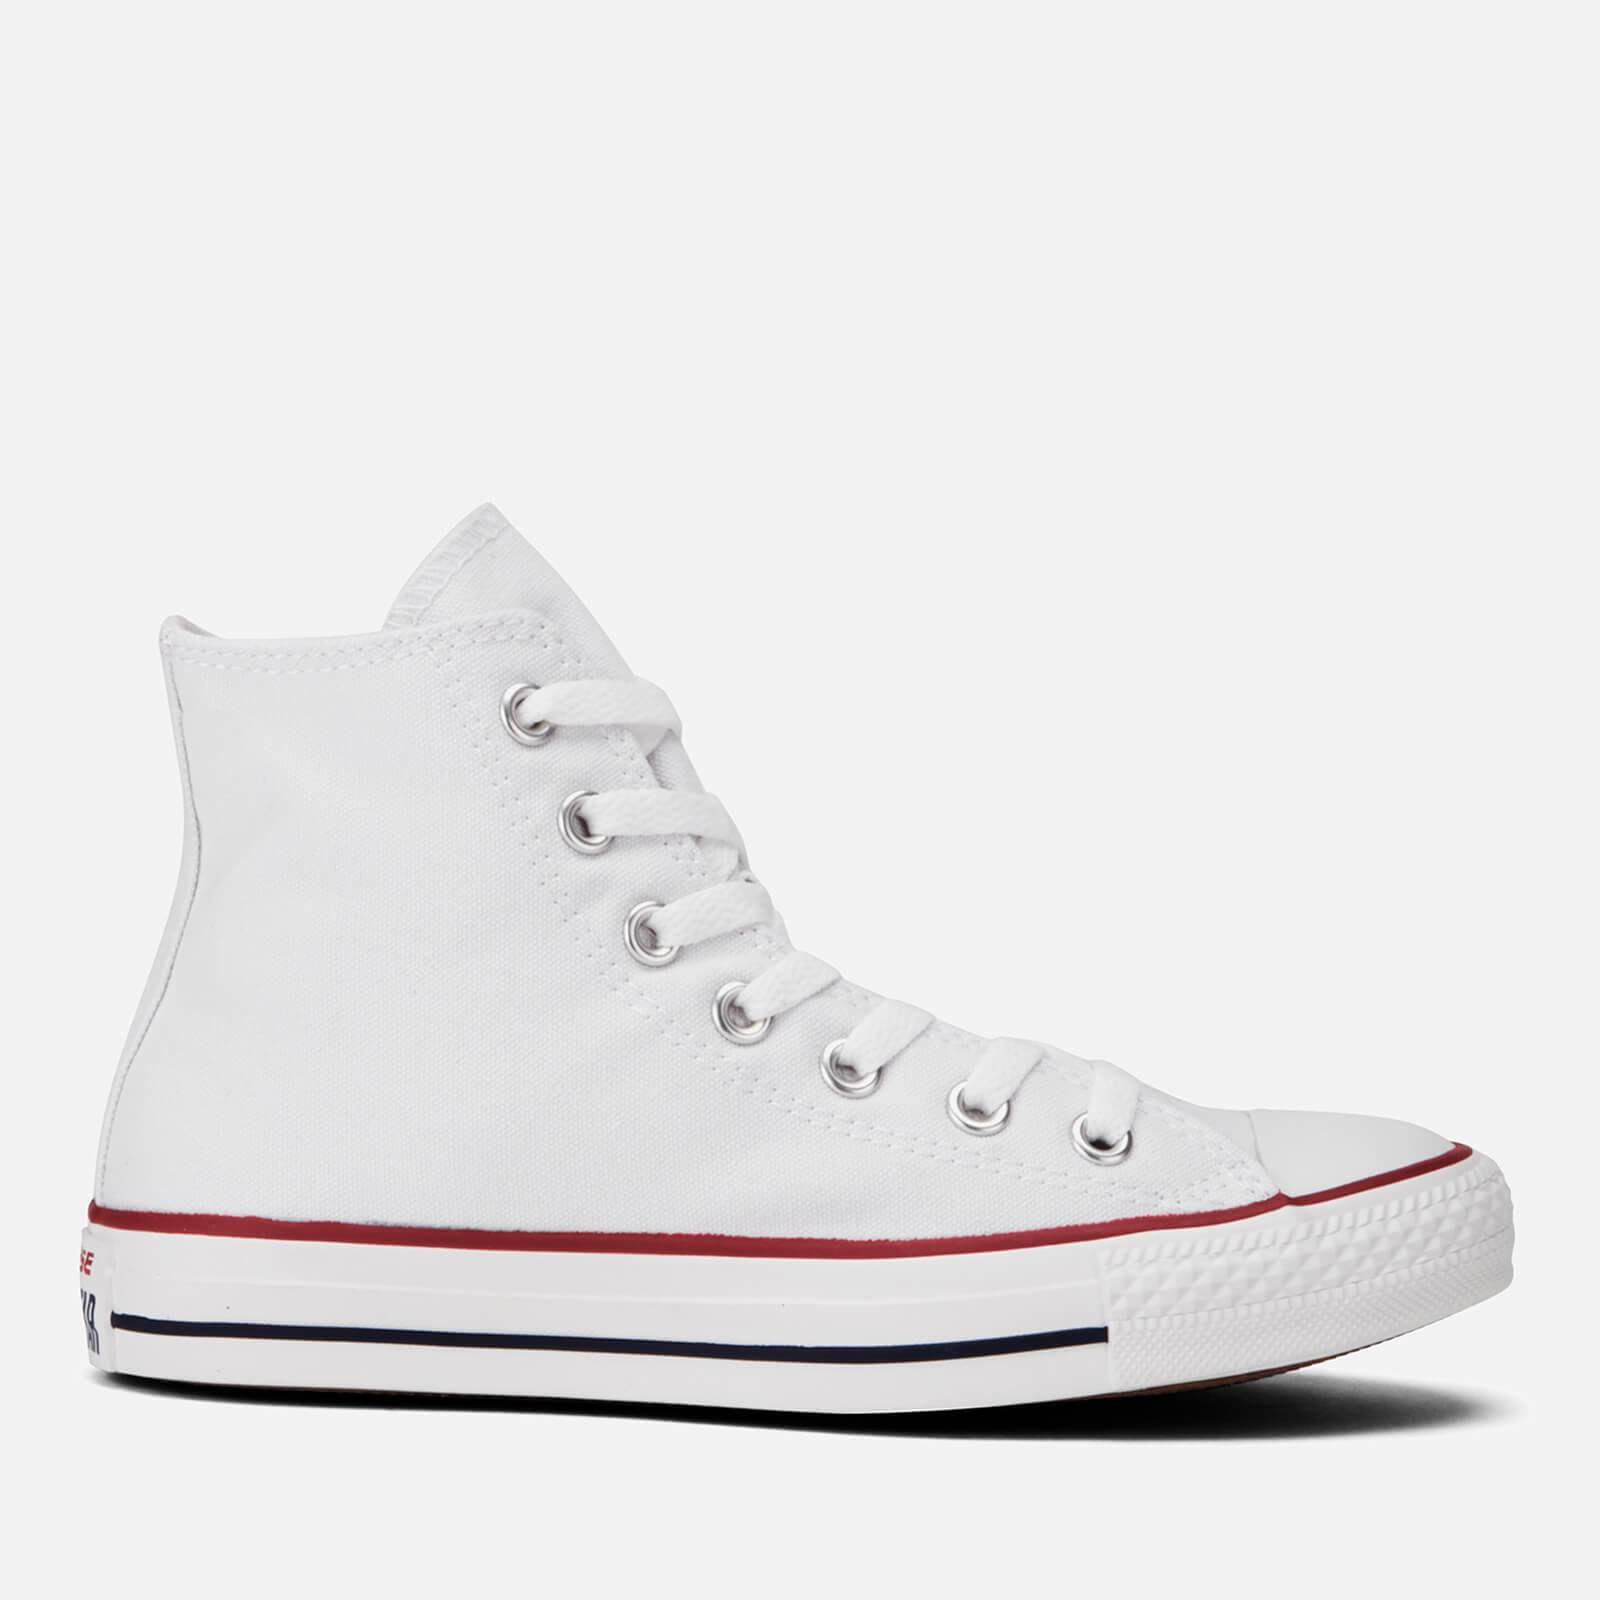 Converse Chuck Taylor All Star Canvas Hi-Top Trainers - Optical White - UK 6